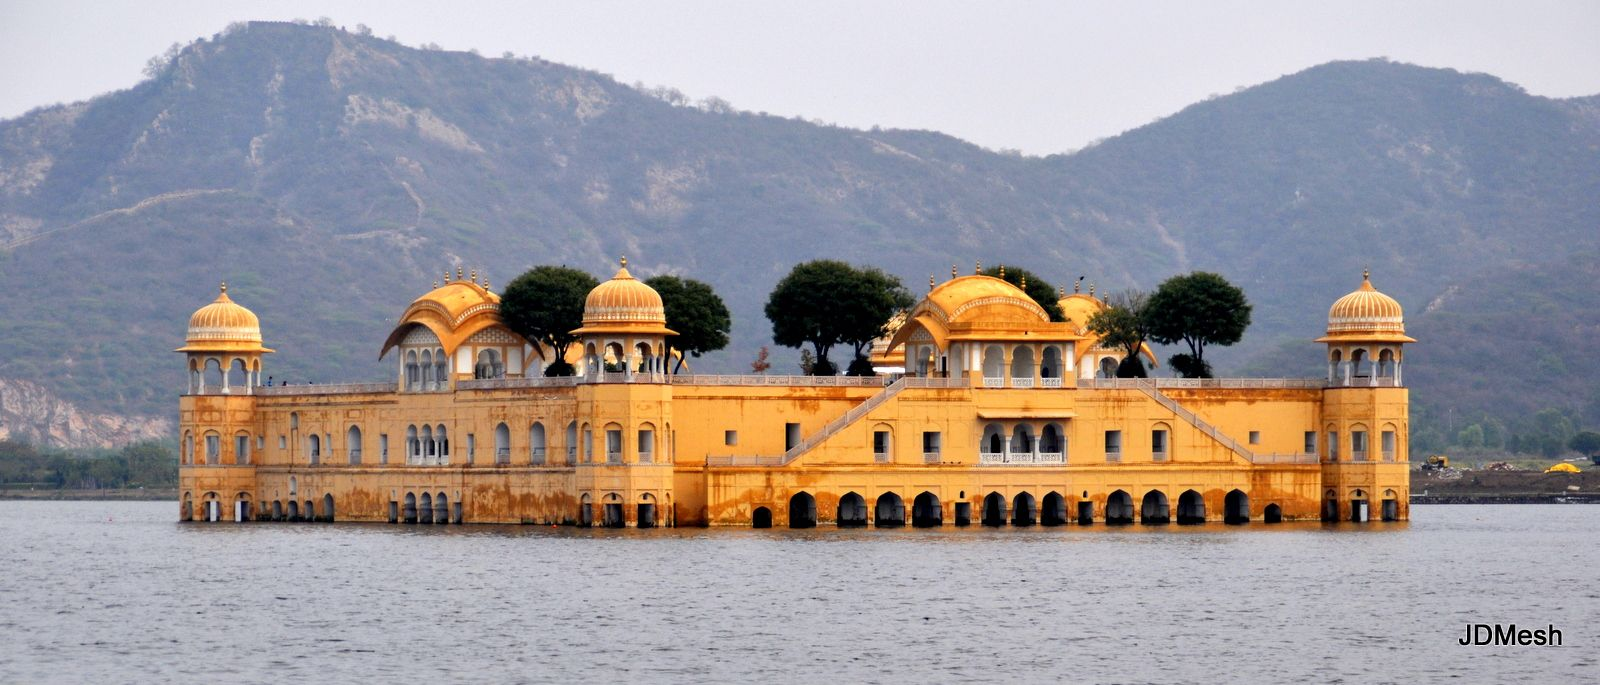 Floating Palace, Jaipur, India